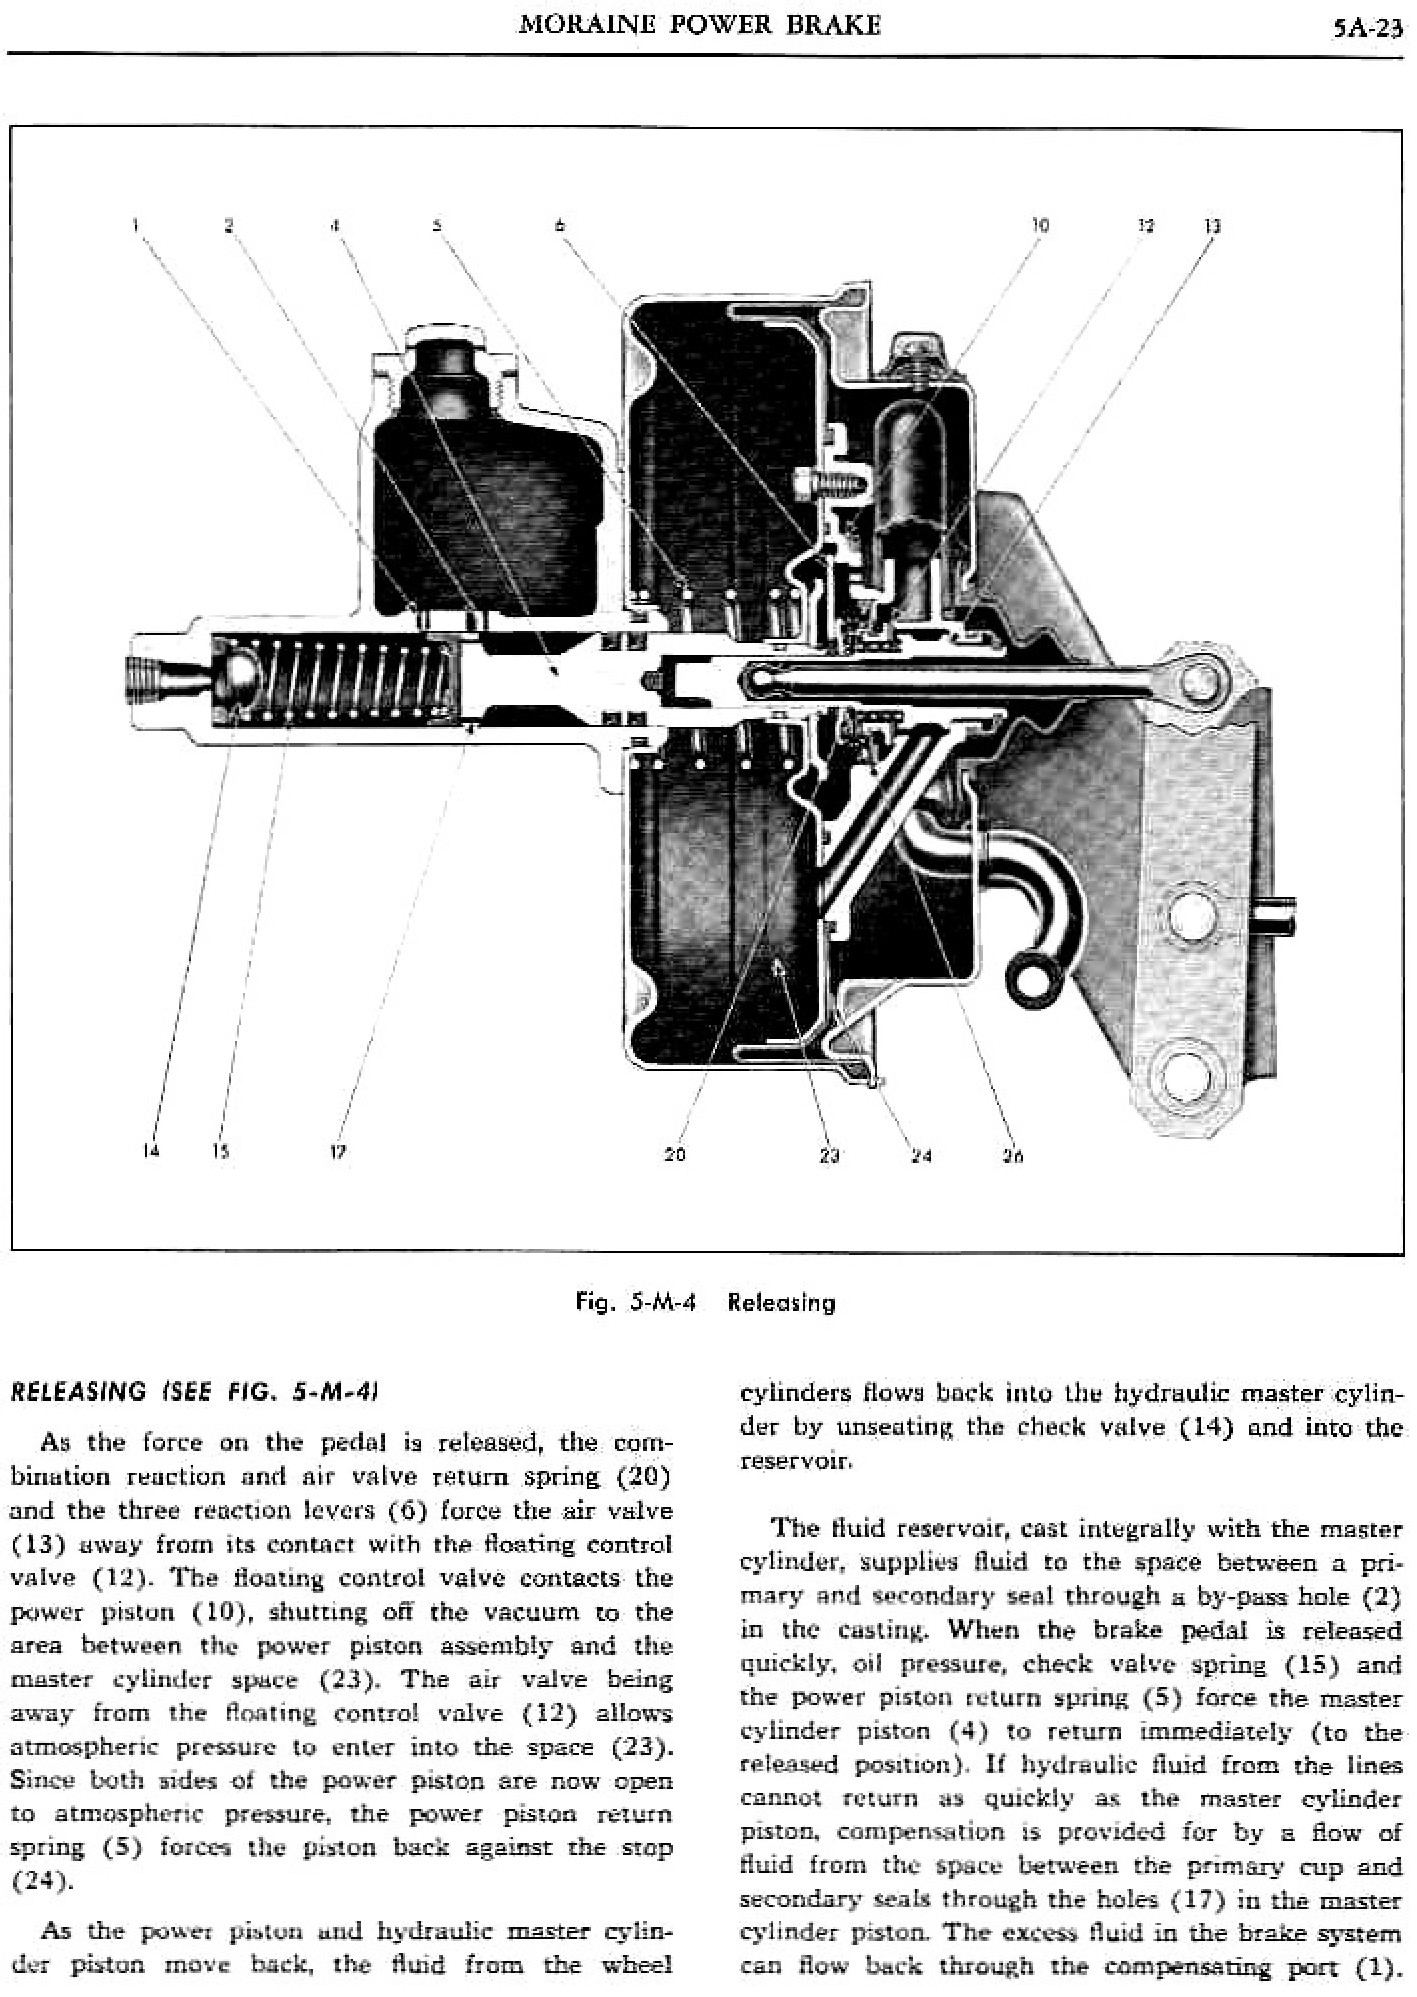 1959 Pontiac Shop Manual- Power Brakes Page 22 of 33